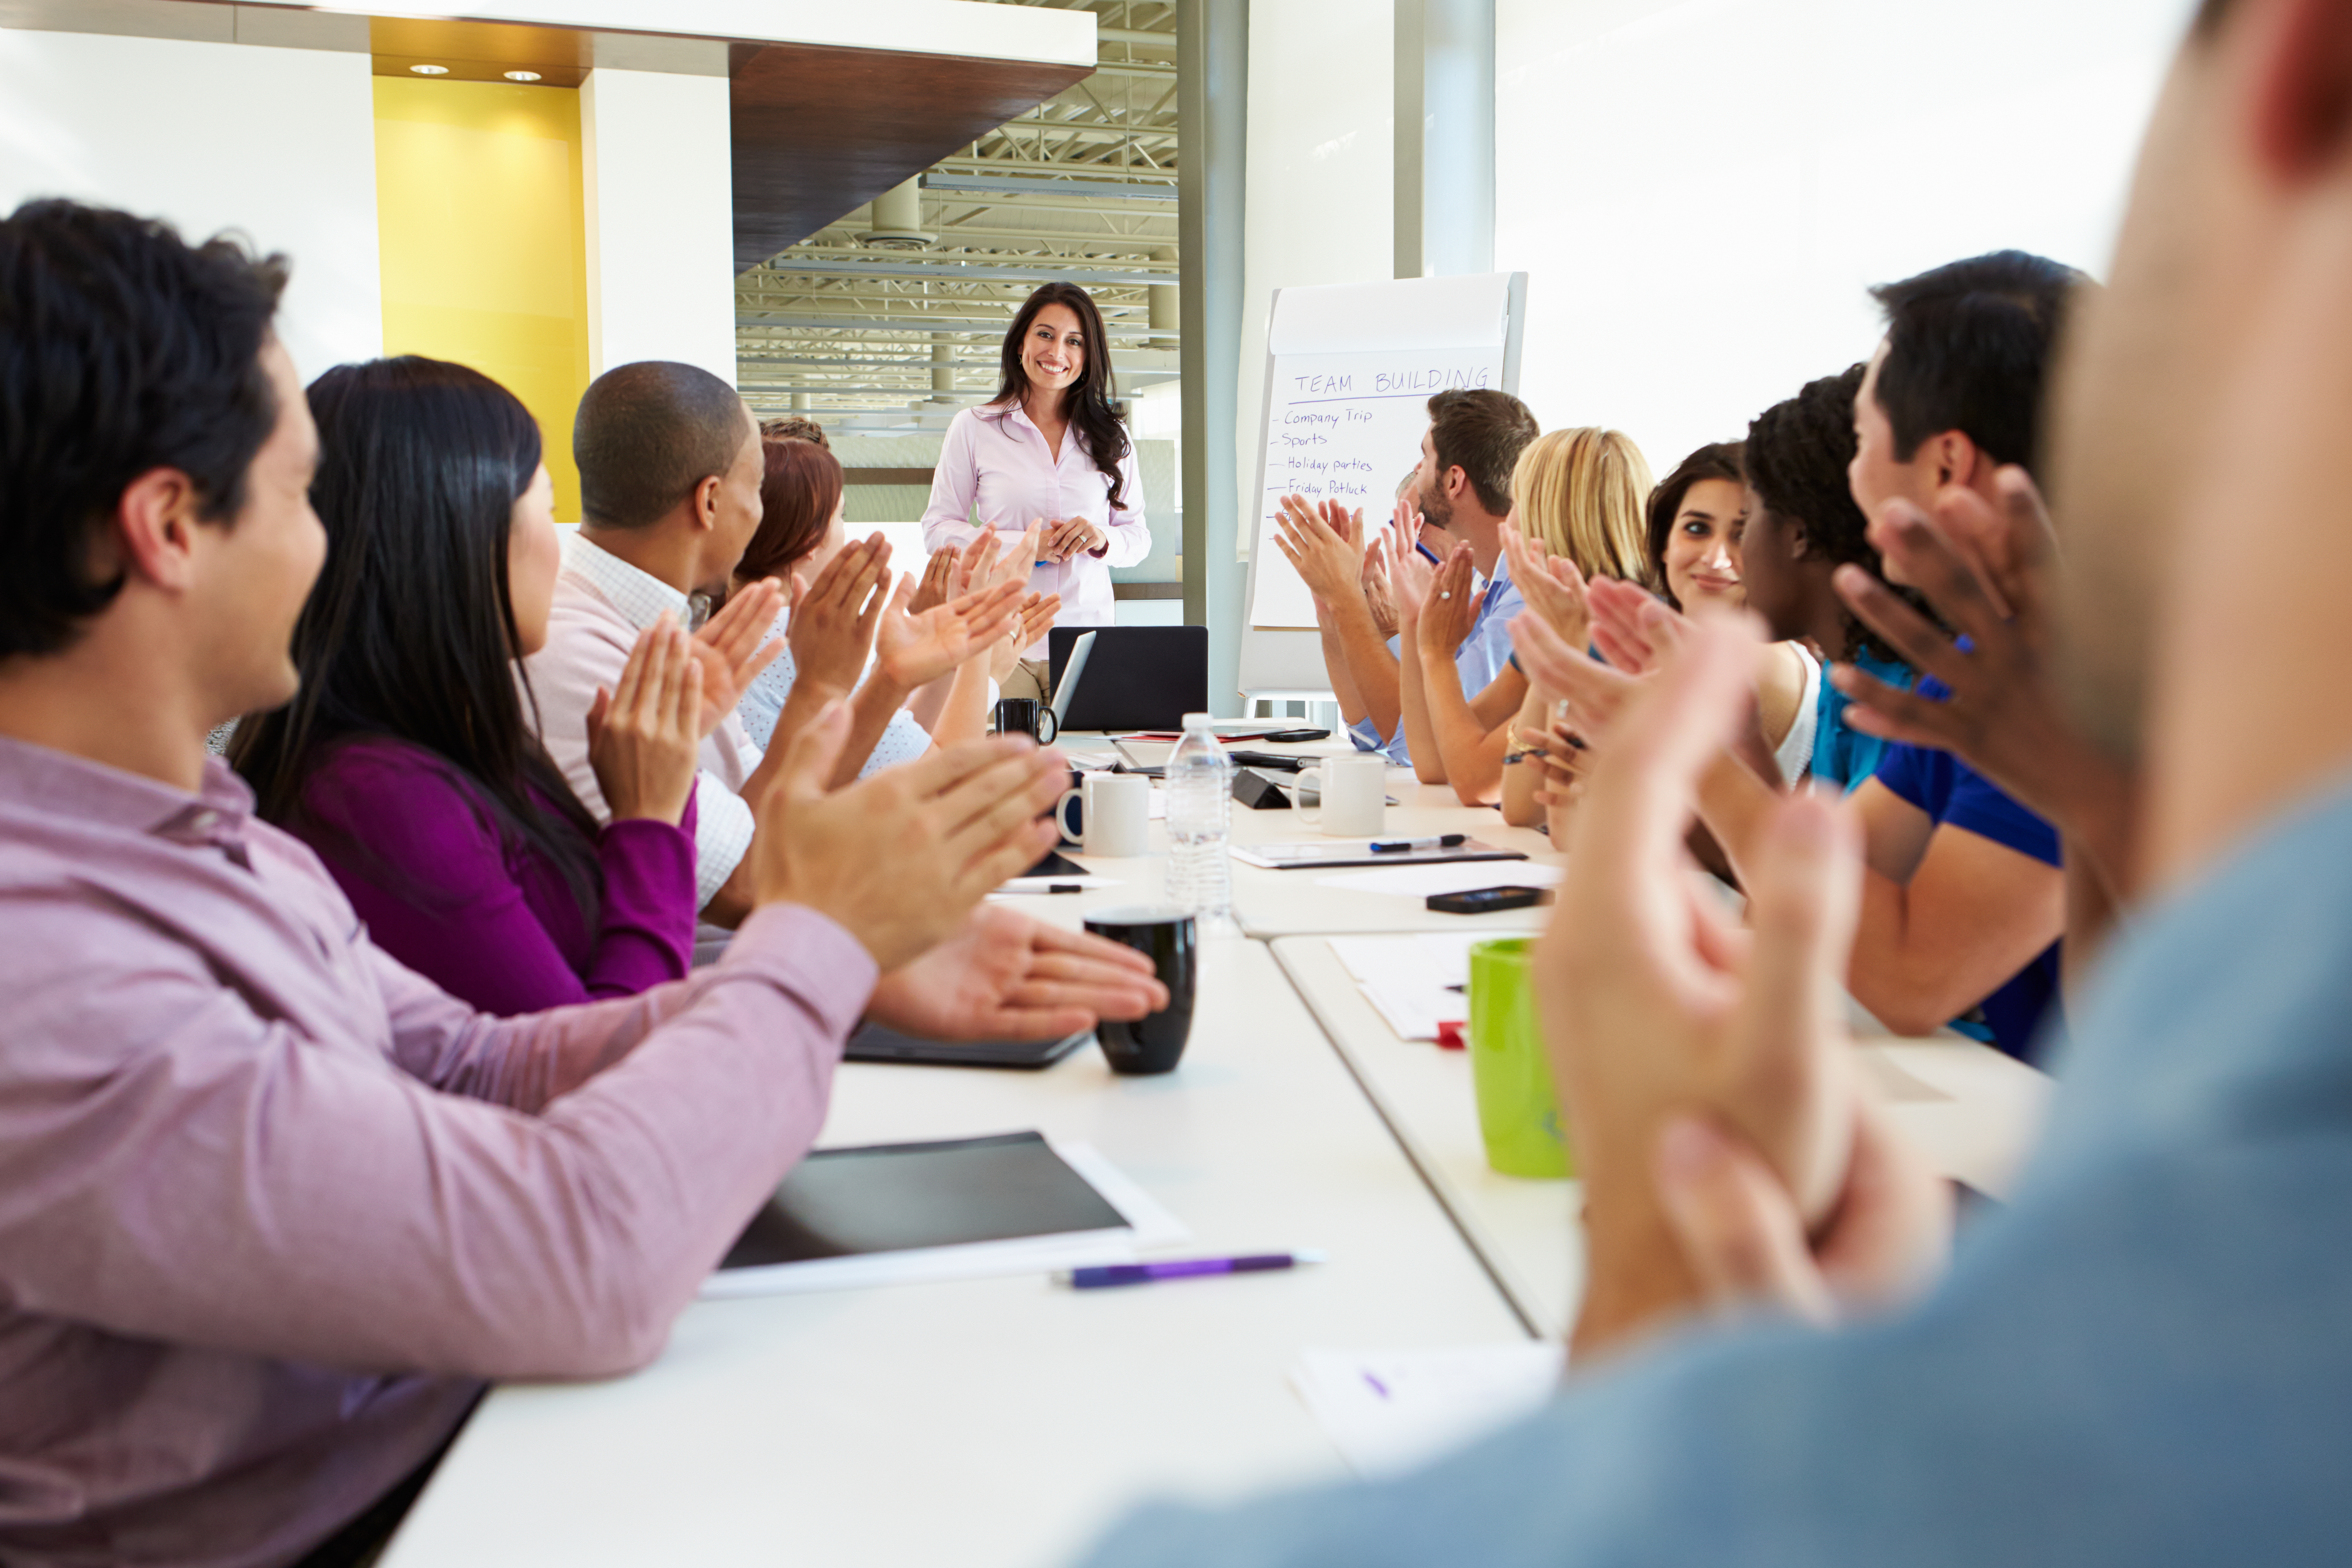 How to Make Every Employee a Star Employee